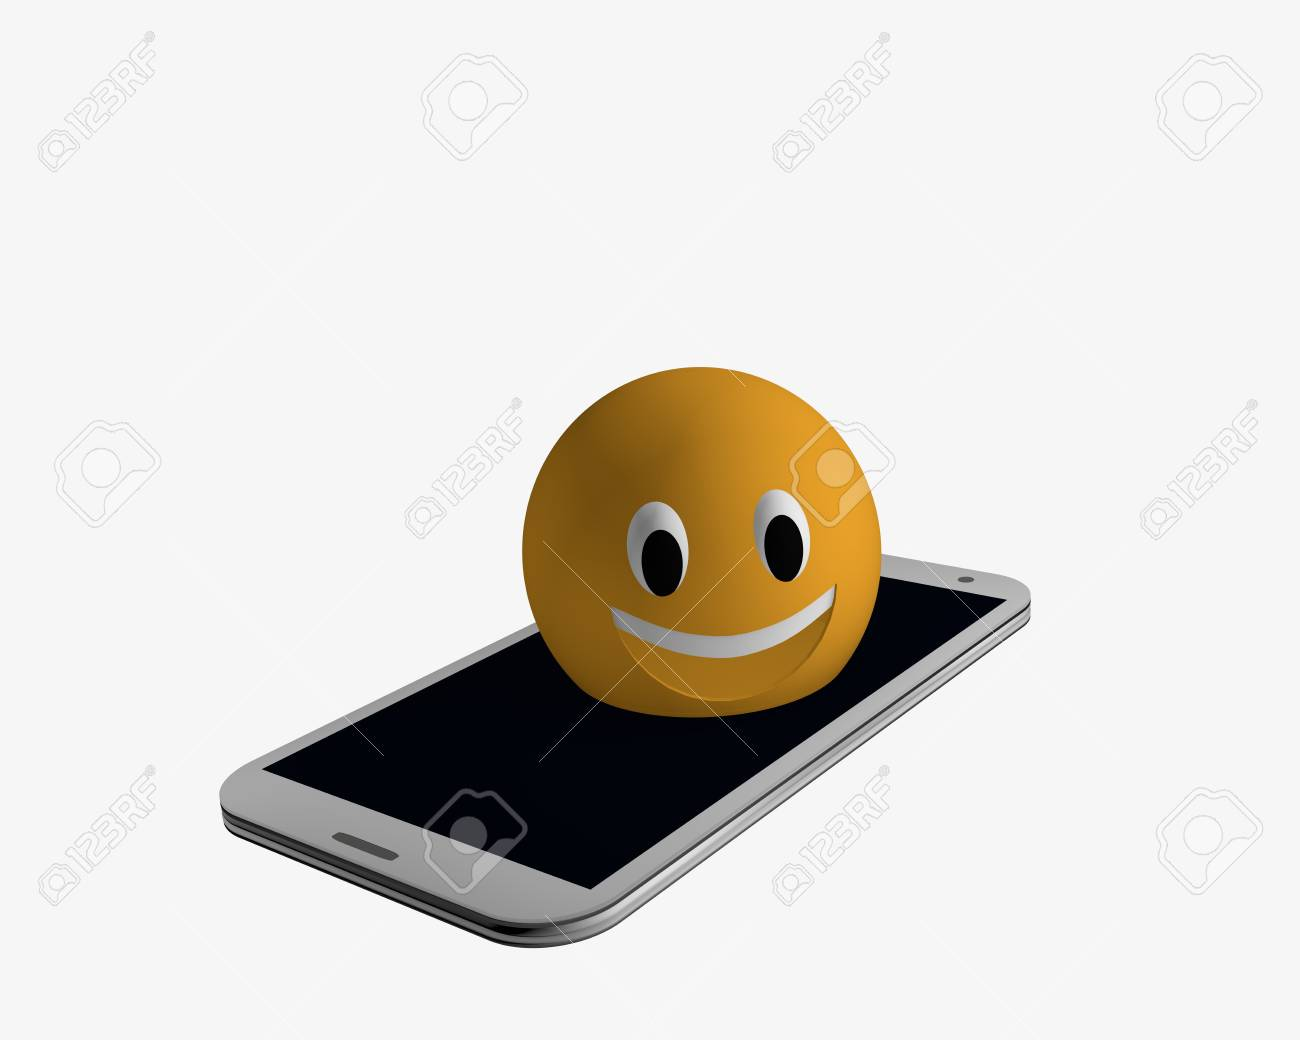 Emoticon comes out of a cell phone. 3d rendering Standard-Bild - 91630325